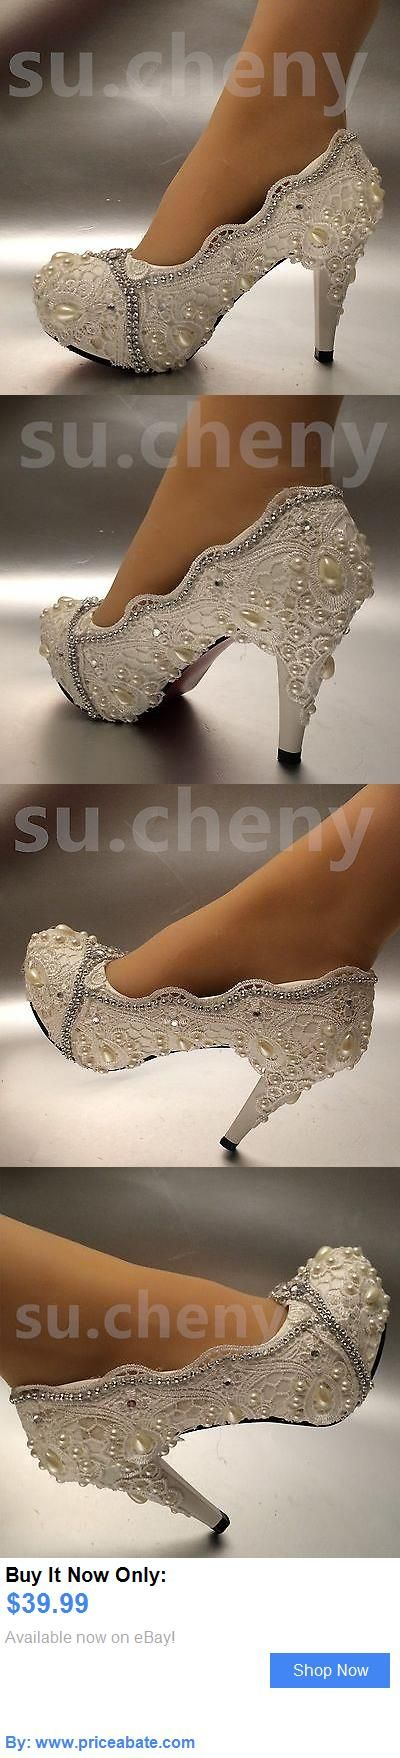 Wedding Shoes And Bridal Shoes: 3 / 4 White Ivory Lace Crystal Pearl Wedding Shoes Bridal High Heels Size 5-10 BUY IT NOW ONLY: $39.99 #priceabateWeddingShoesAndBridalShoes OR #priceabate